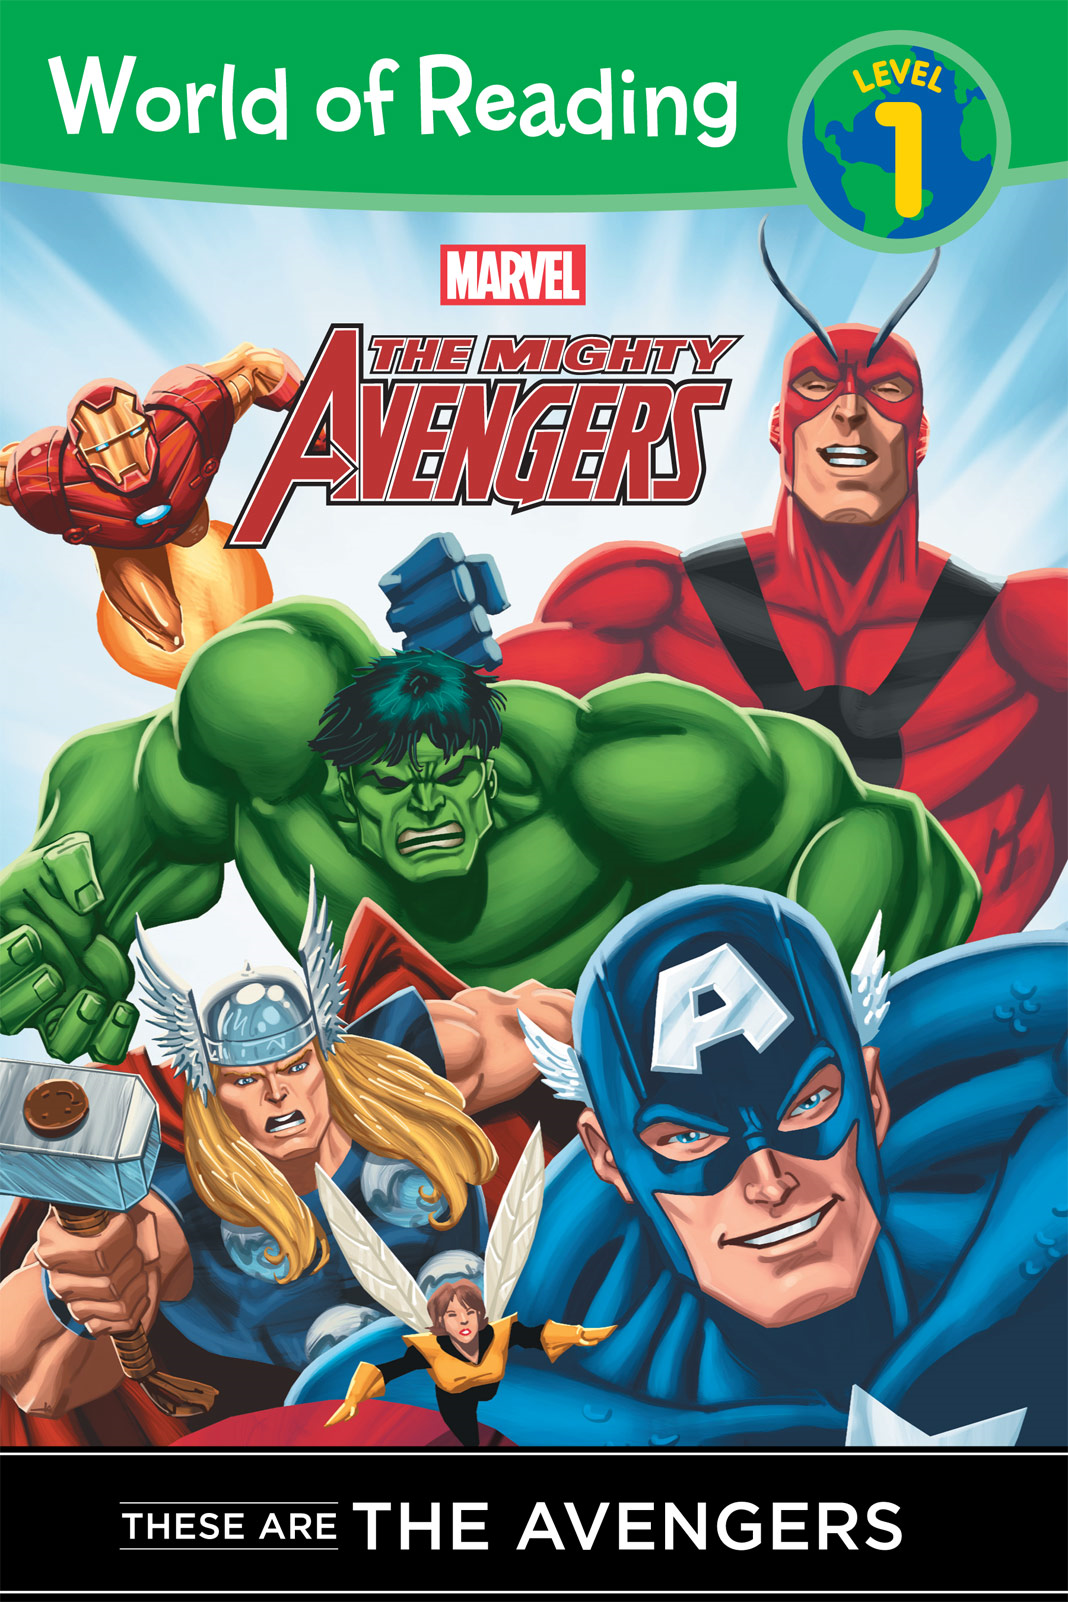 The Mighty Avengers: These are The Avengers (Level 1 Reader) By: Disney Book Group